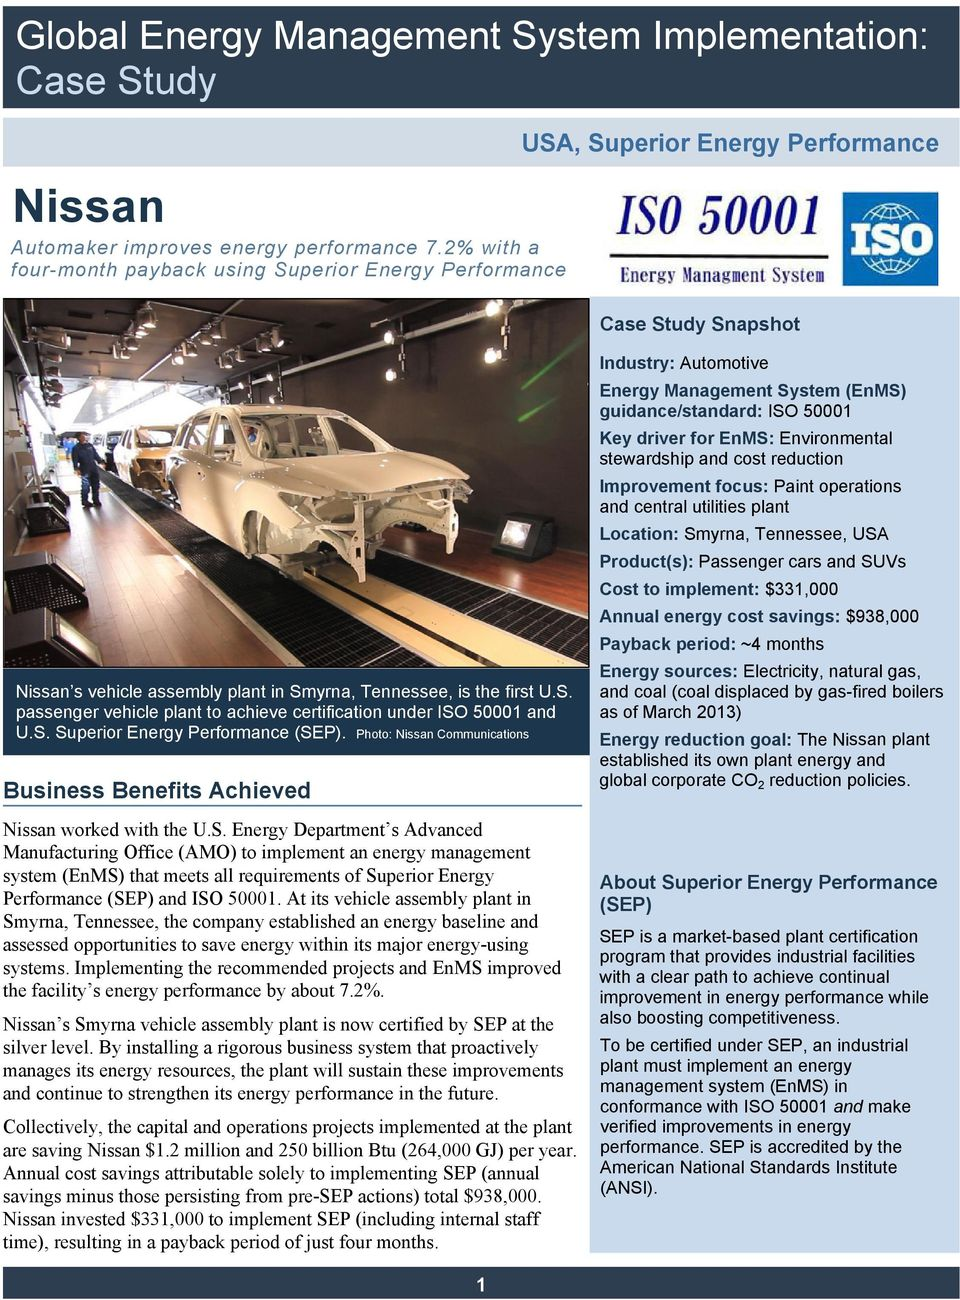 S. Superior Energy Performance (SEP). Photo: Nissan Communications Business Benefits Achieved Nissan worked with the U.S. Energy Department s Advanced Manufacturing Office (AMO) to implement an energy management system (EnMS) that meets all requirements of Superior Energy Performance (SEP) and ISO 50001.